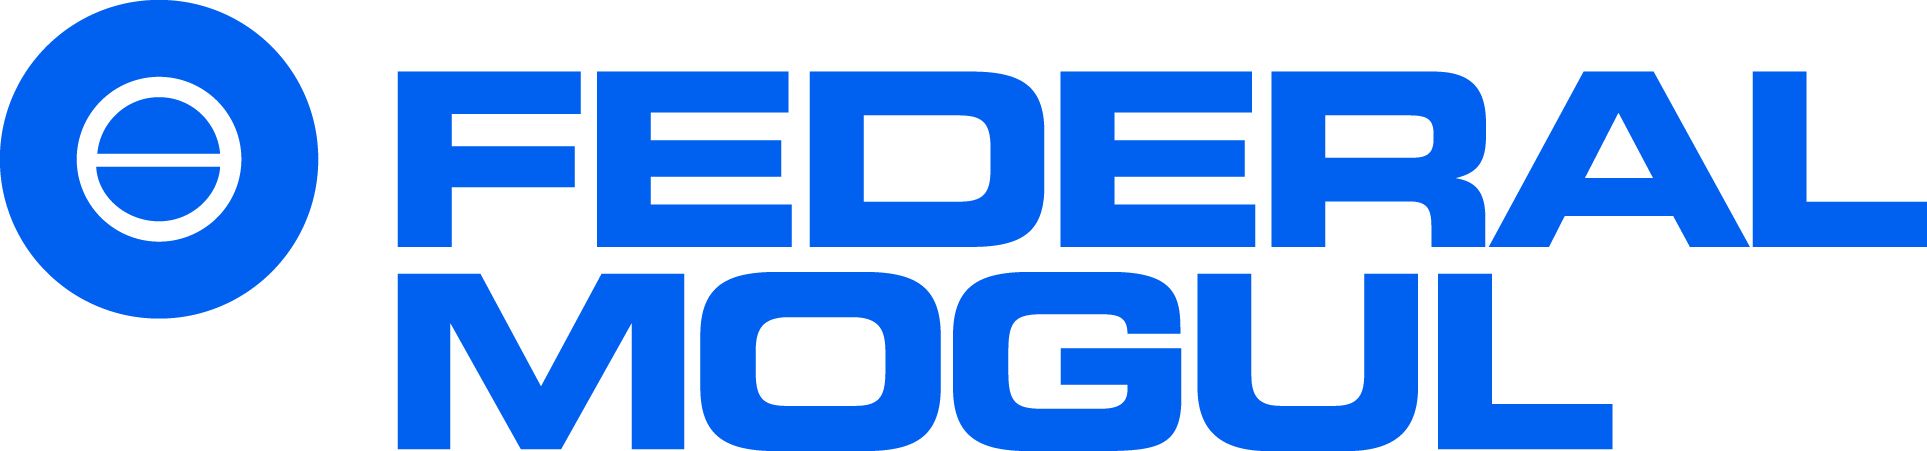 GARAGE PIGEAU - logo Federal Mogul